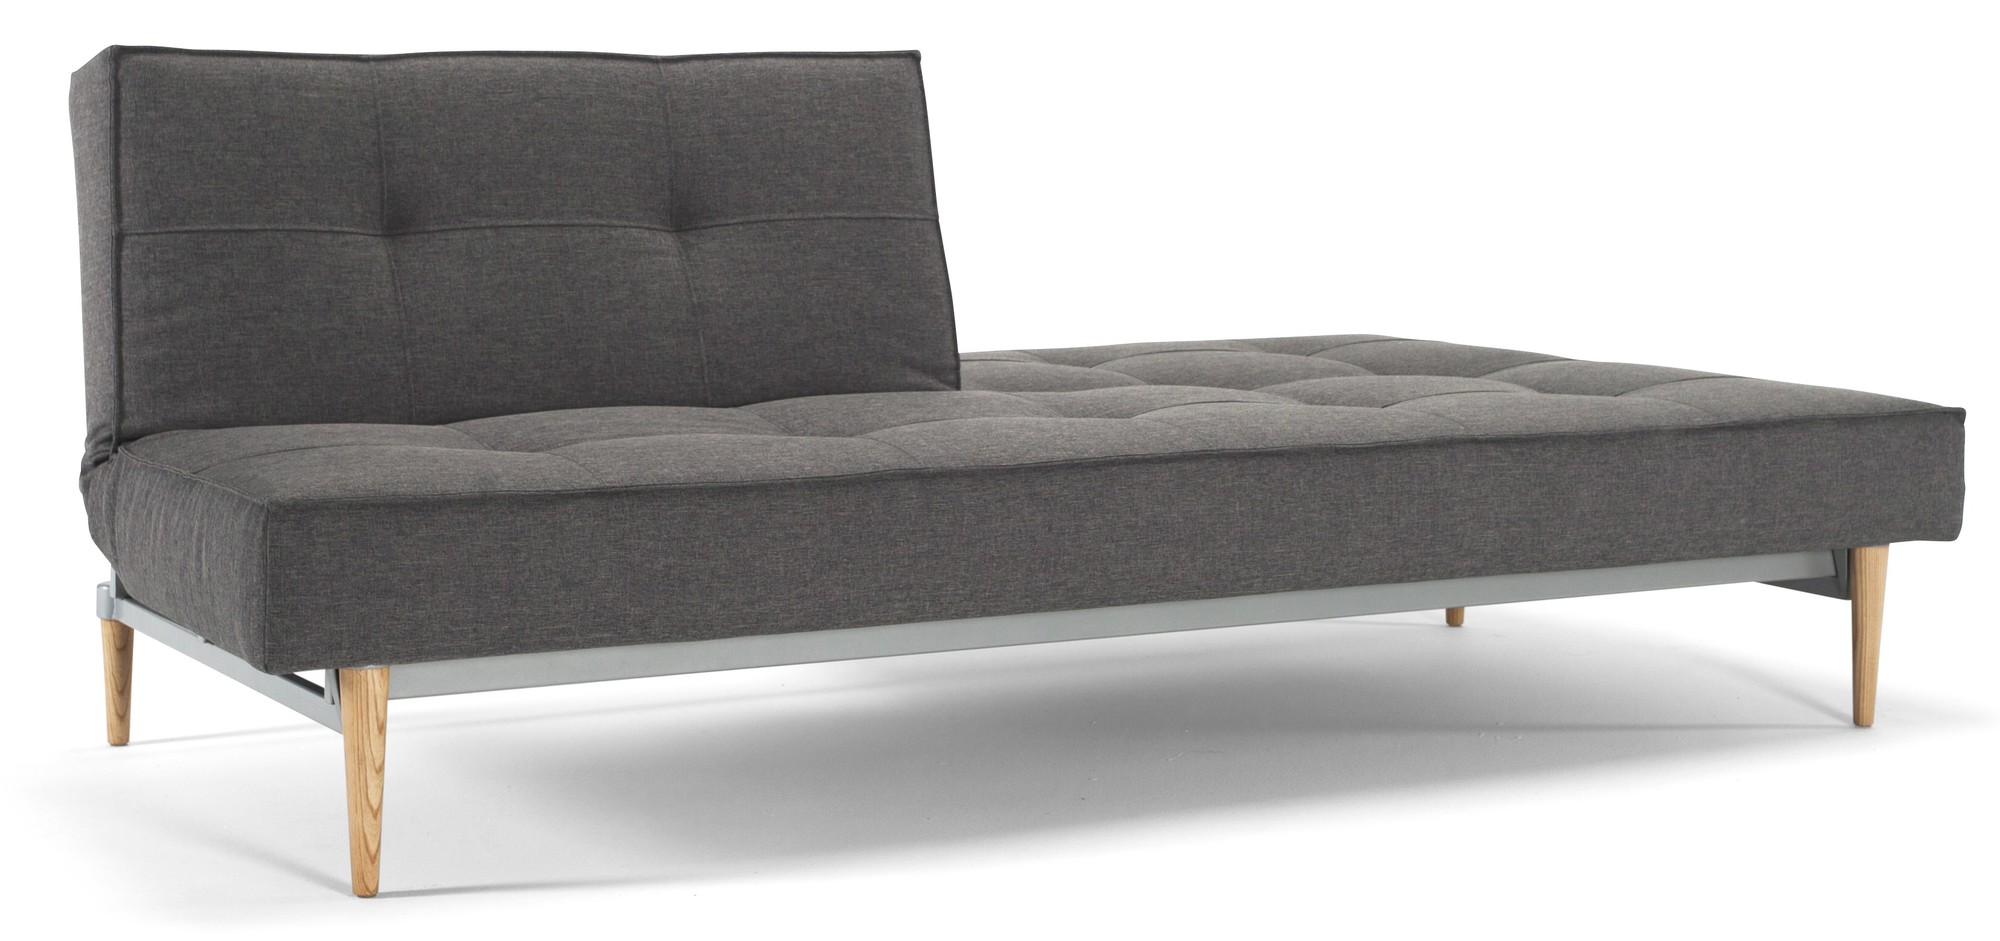 Innovation Slaapbank Splitback - Flashtex Dark Grey 216 - Styletto Poten Licht